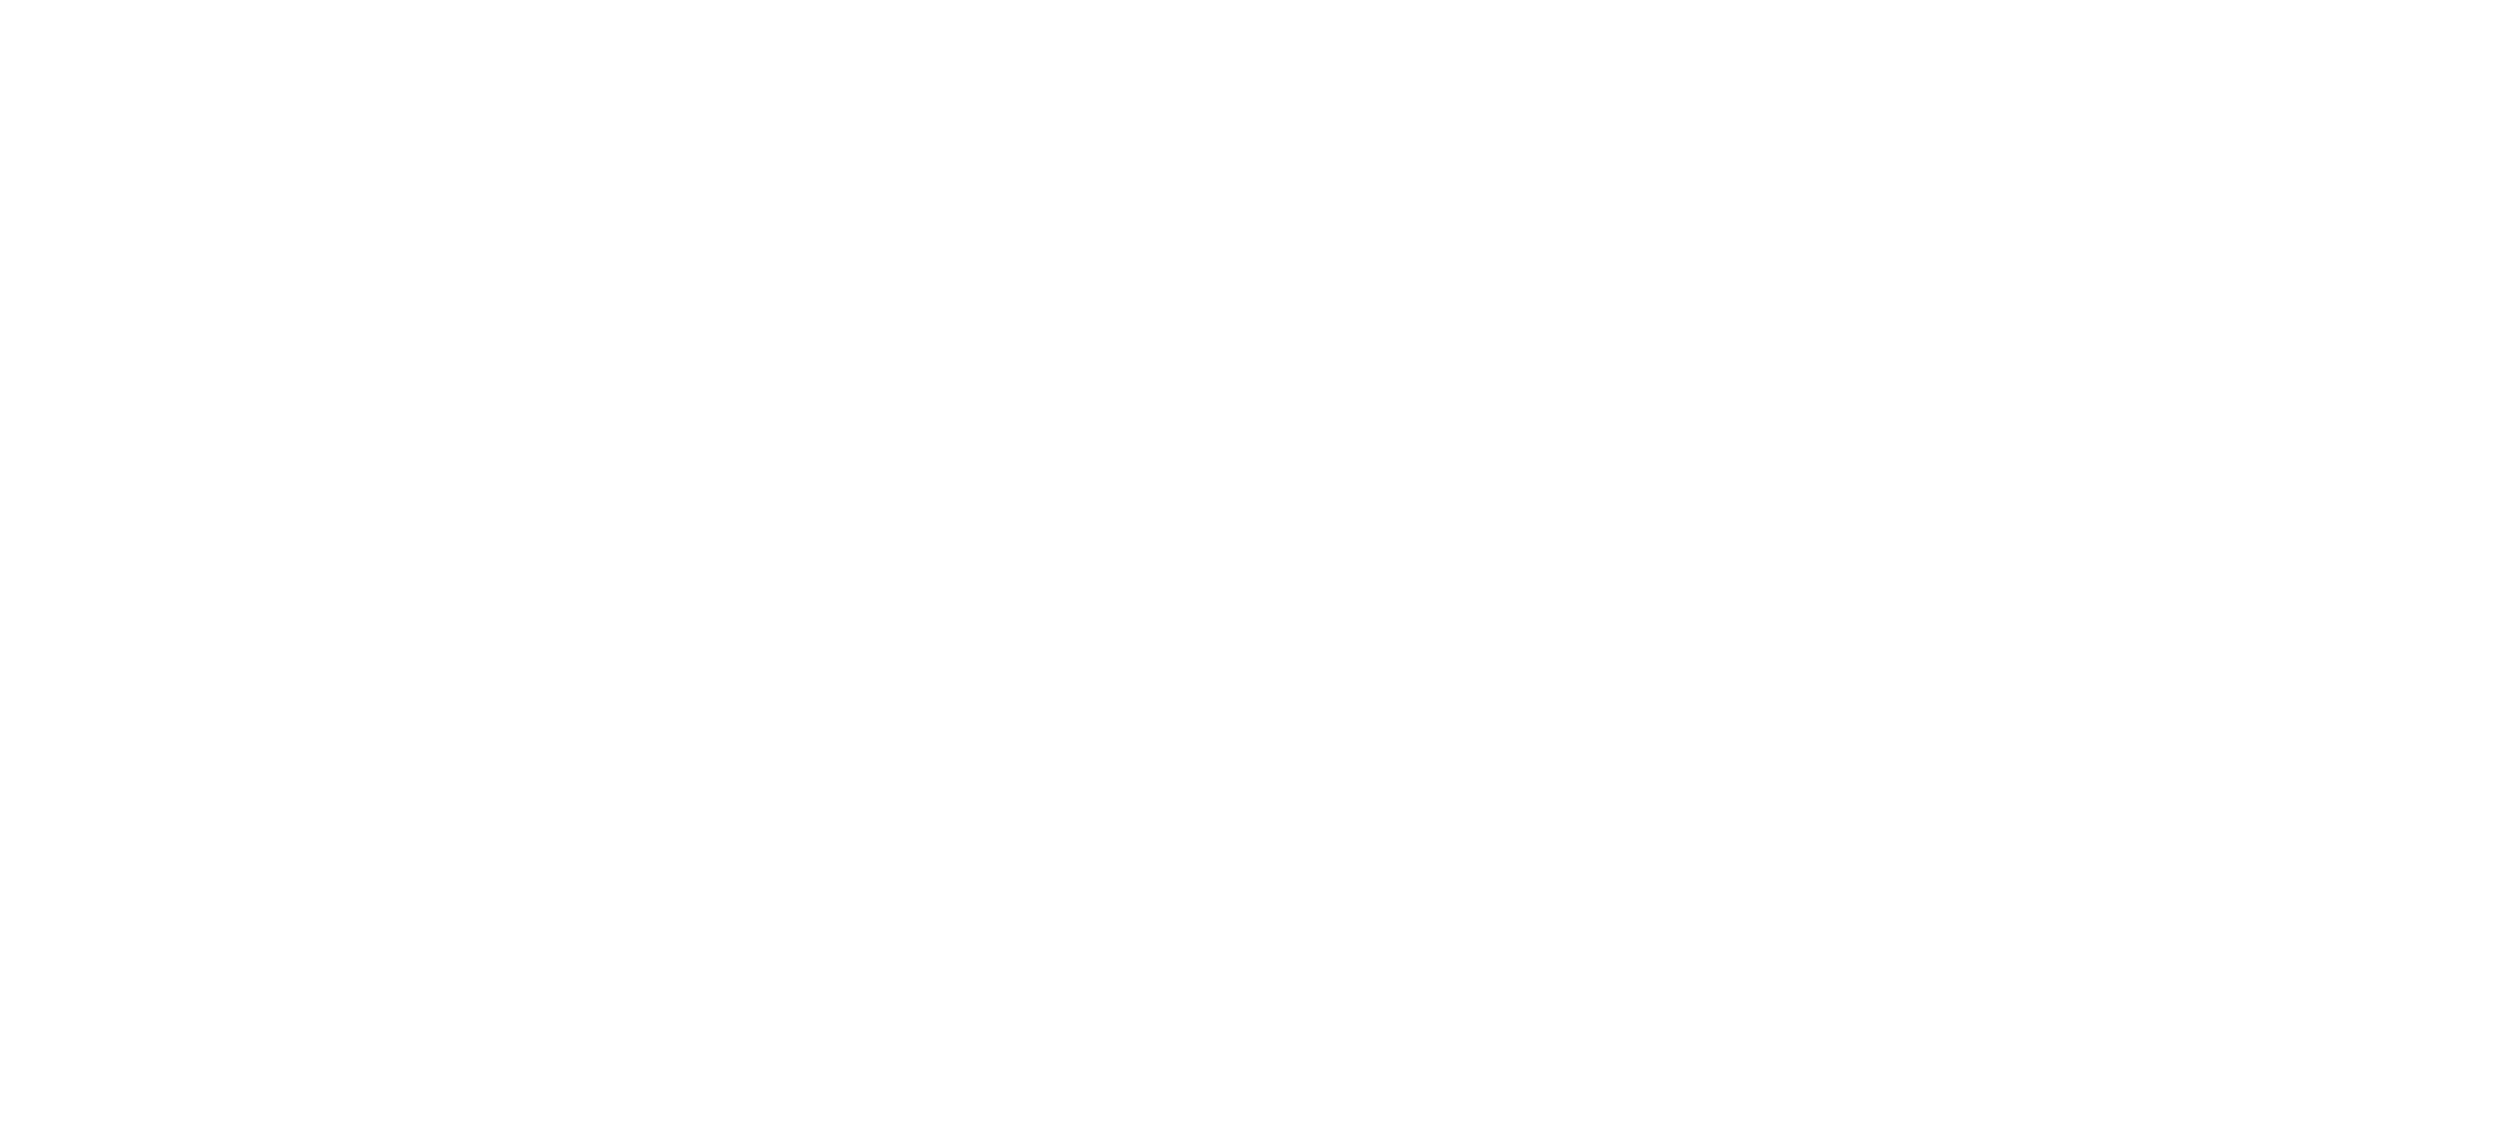 Sales Academy Online Courses